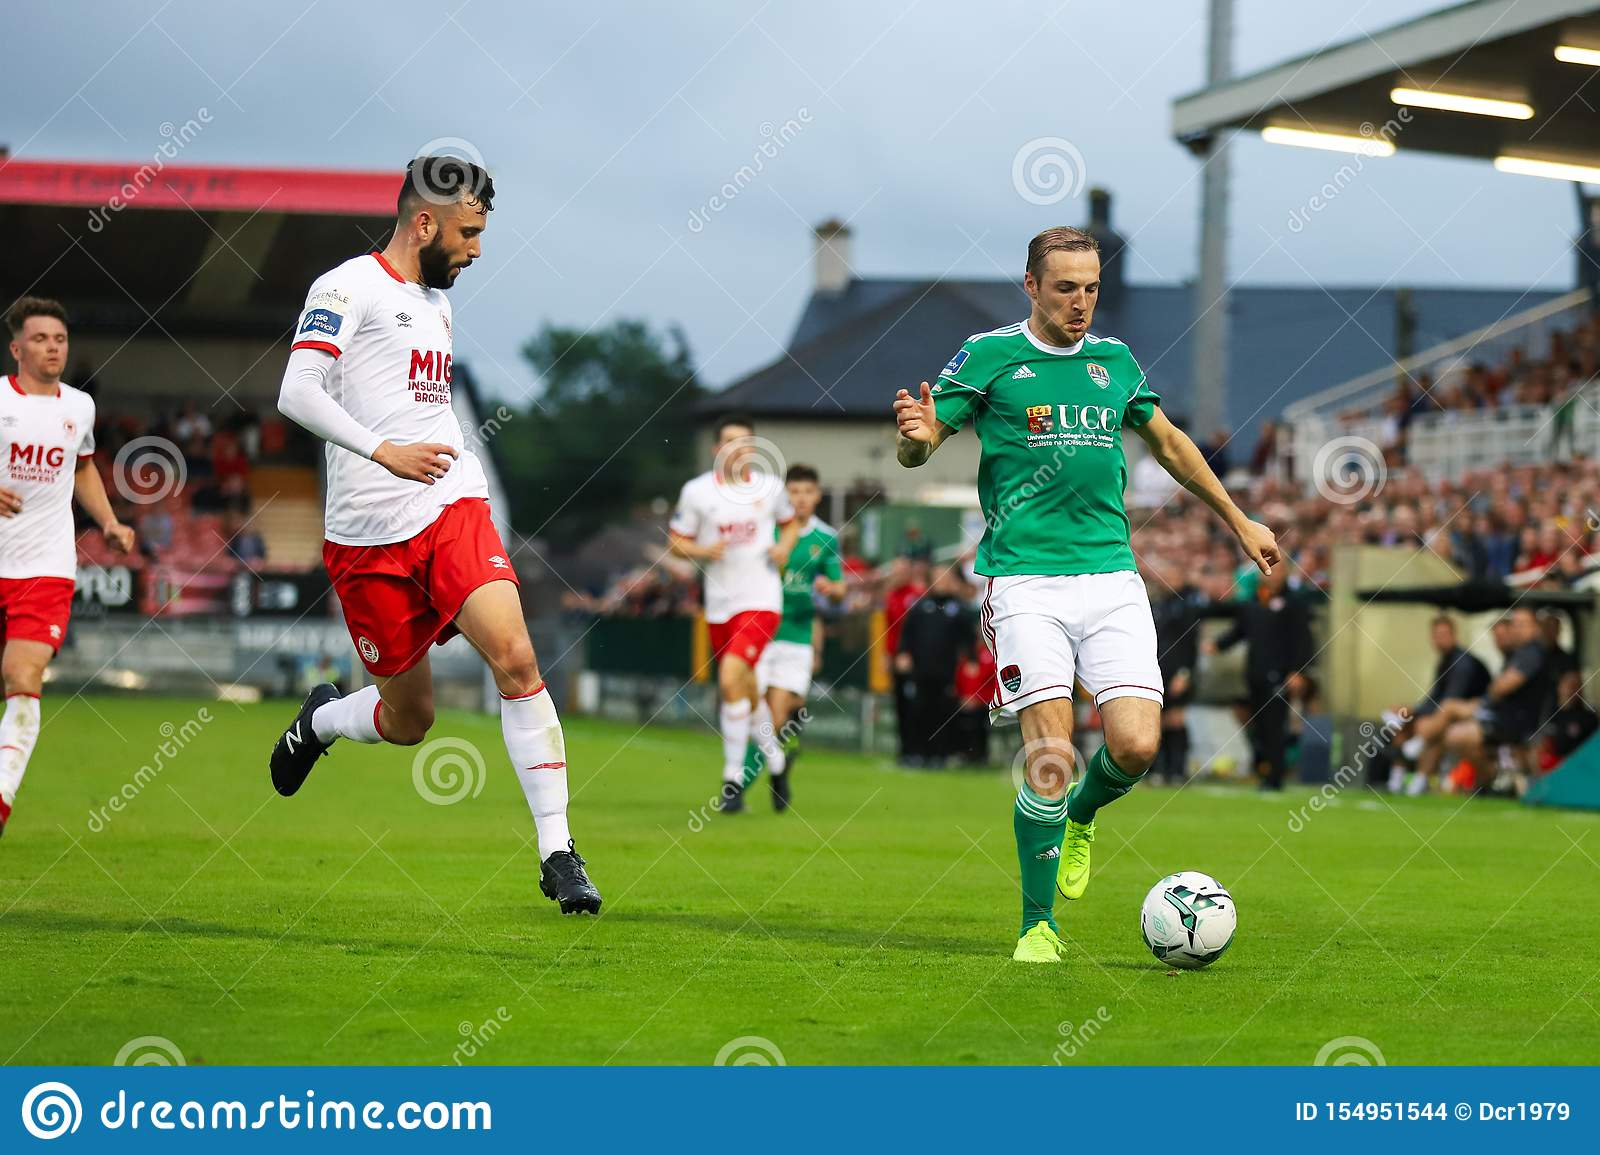 Karl Sheppard at League of Ireland Premier Division match between Cork City FC vs St Patricks Athletic FC